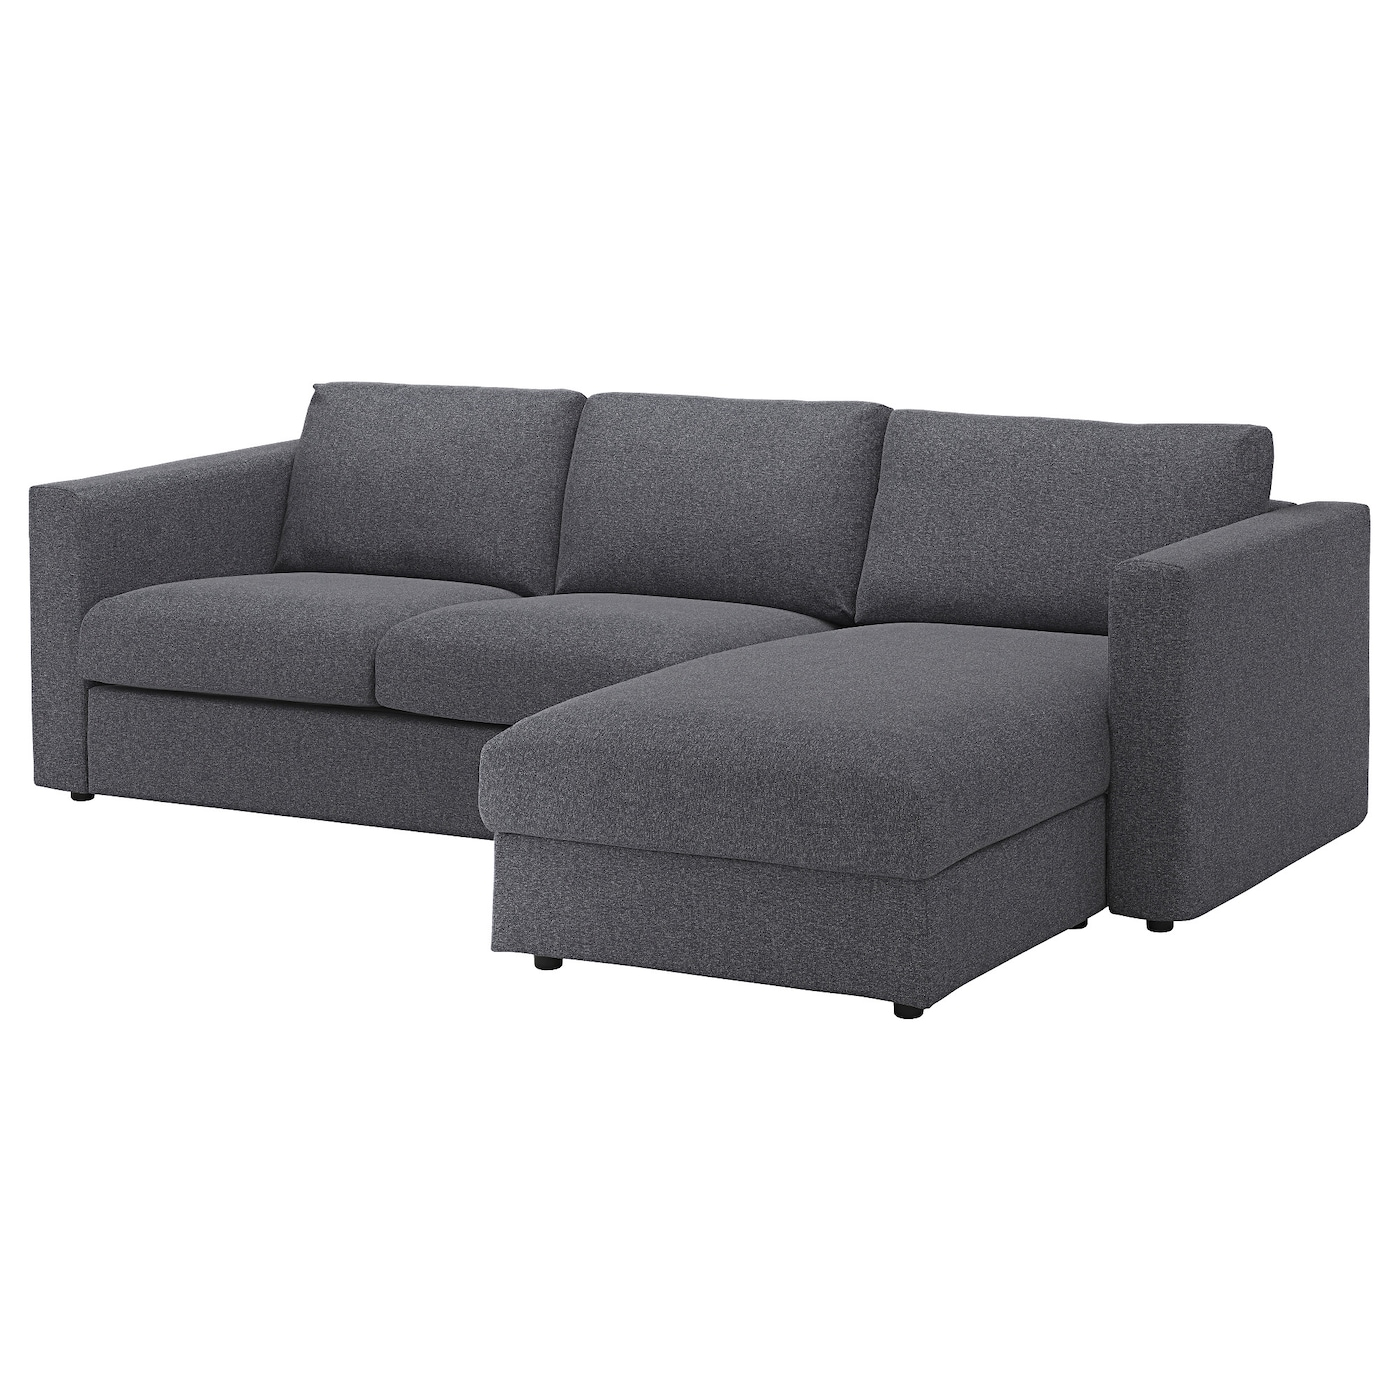 Vimle 3 seat sofa with chaise longue gunnared medium grey for Chaise longue tissu